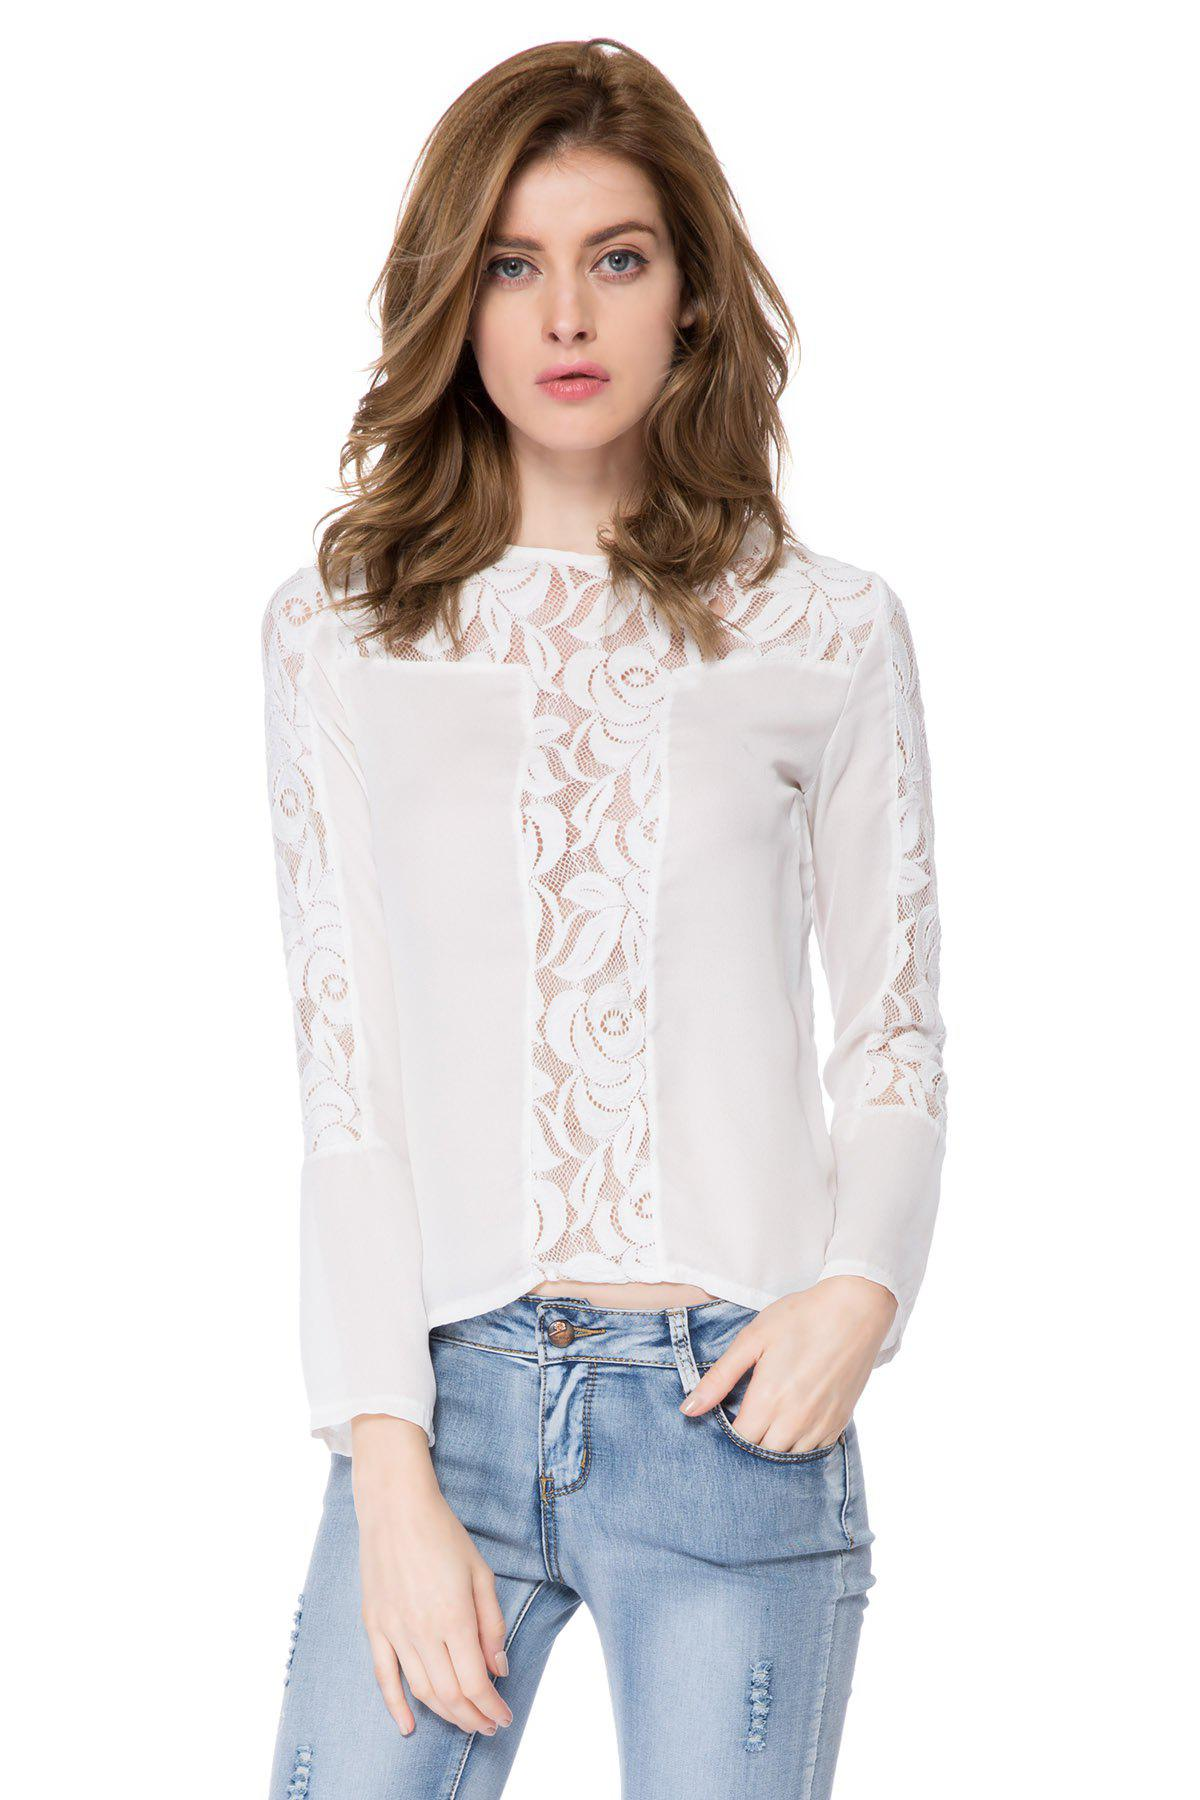 Fashionable Round Neck Long Sleeve Solid Color Spliced Women's Blouse - WHITE S